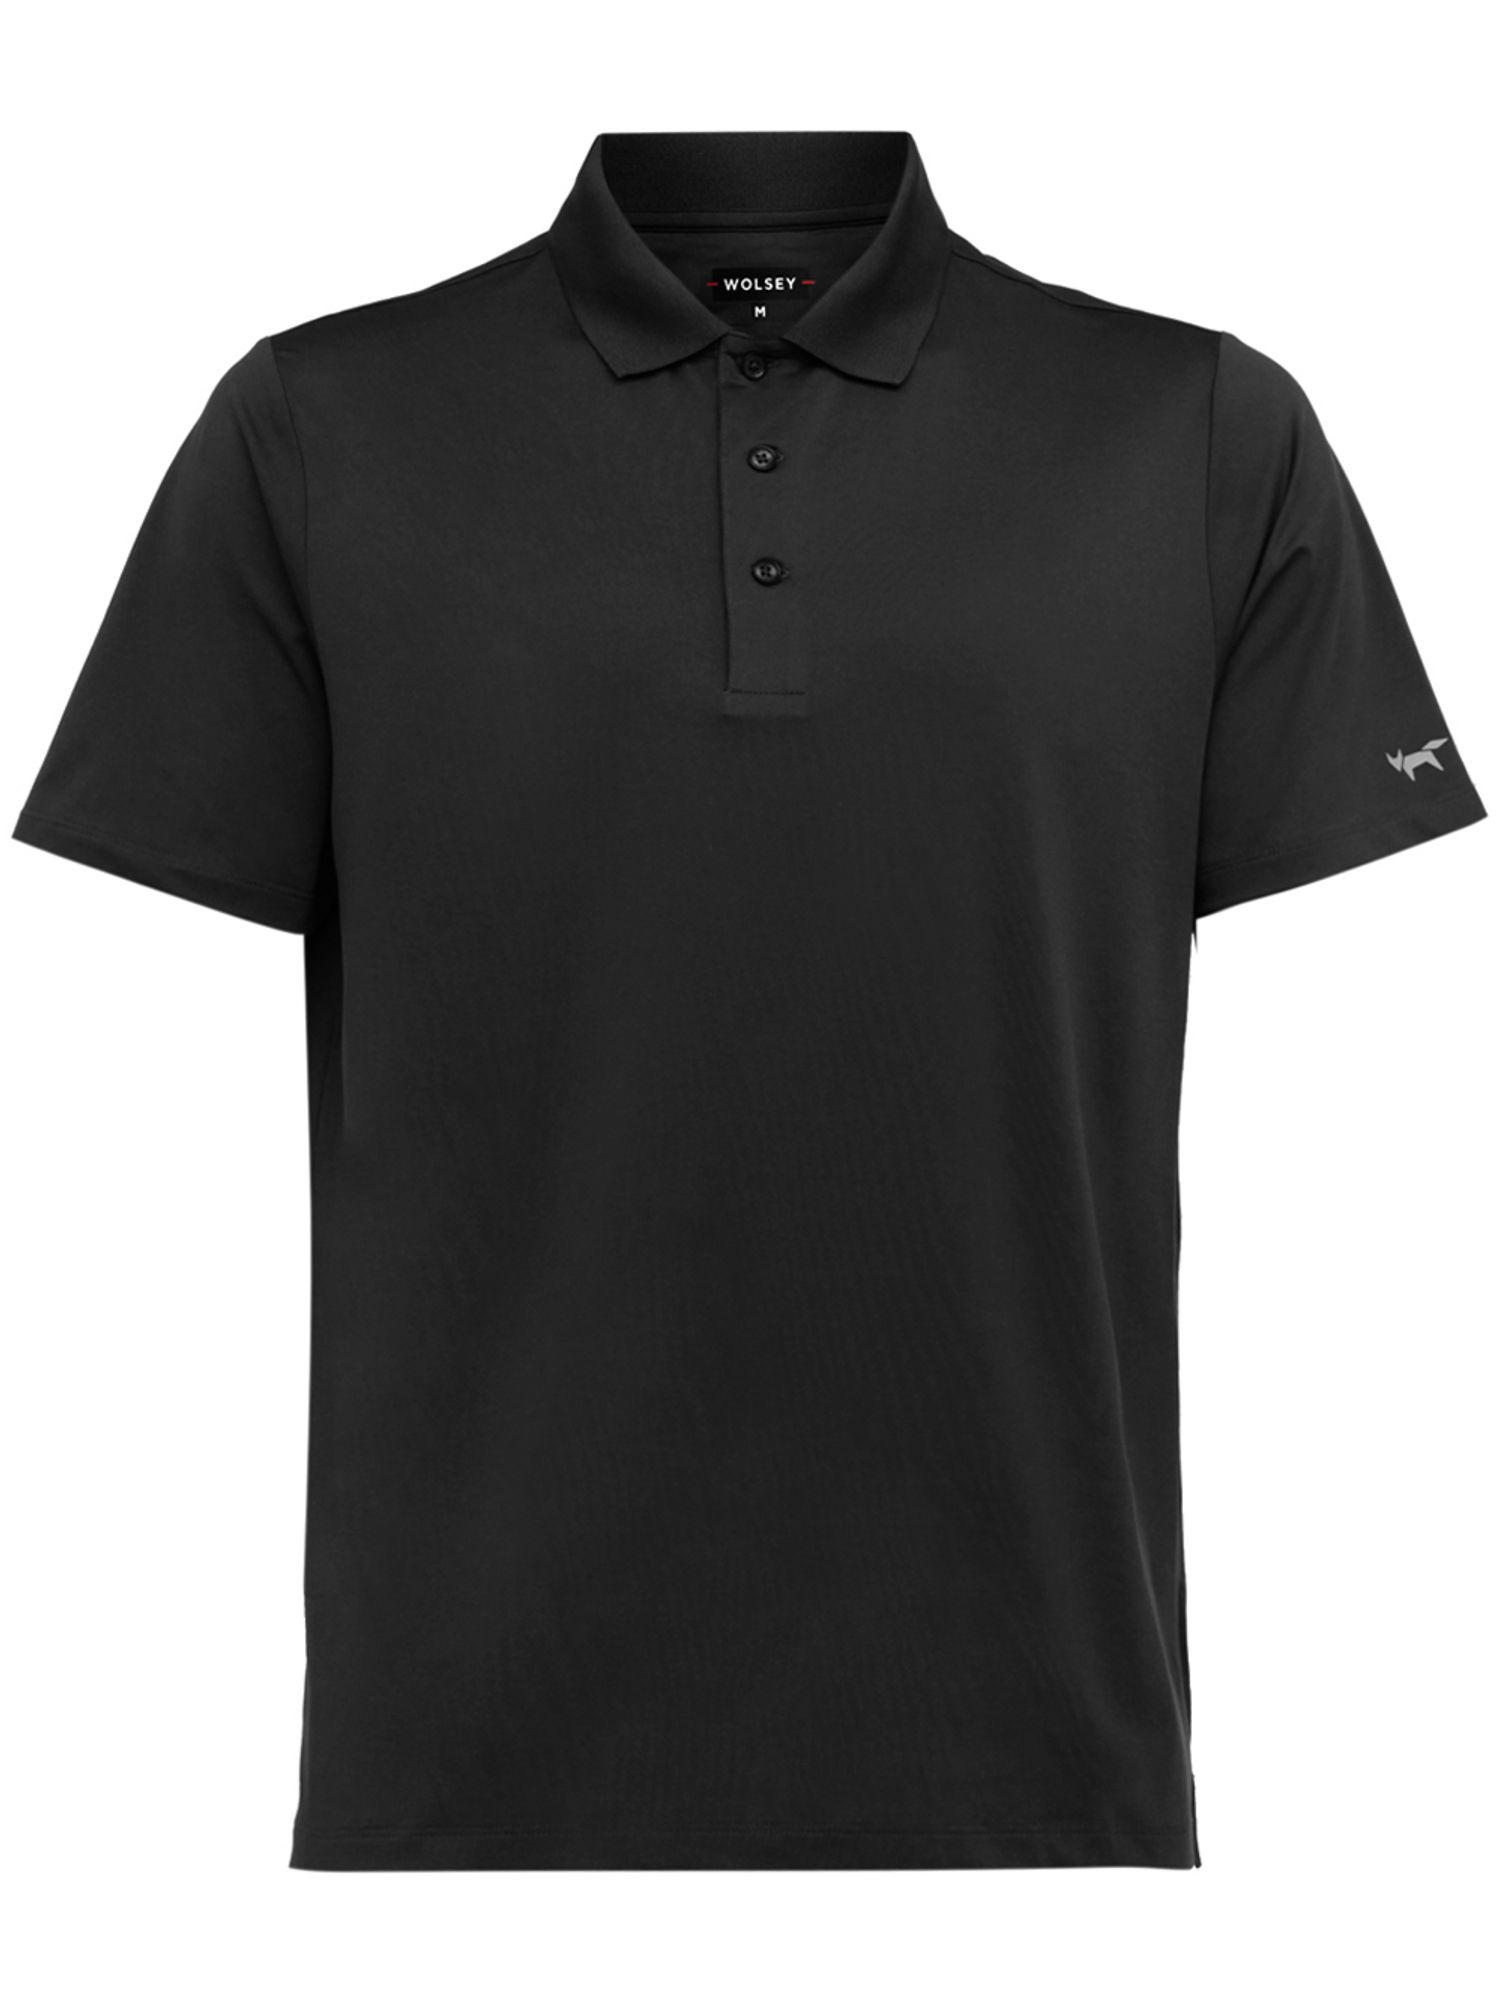 Men's Wolsey Classic Polo, Black